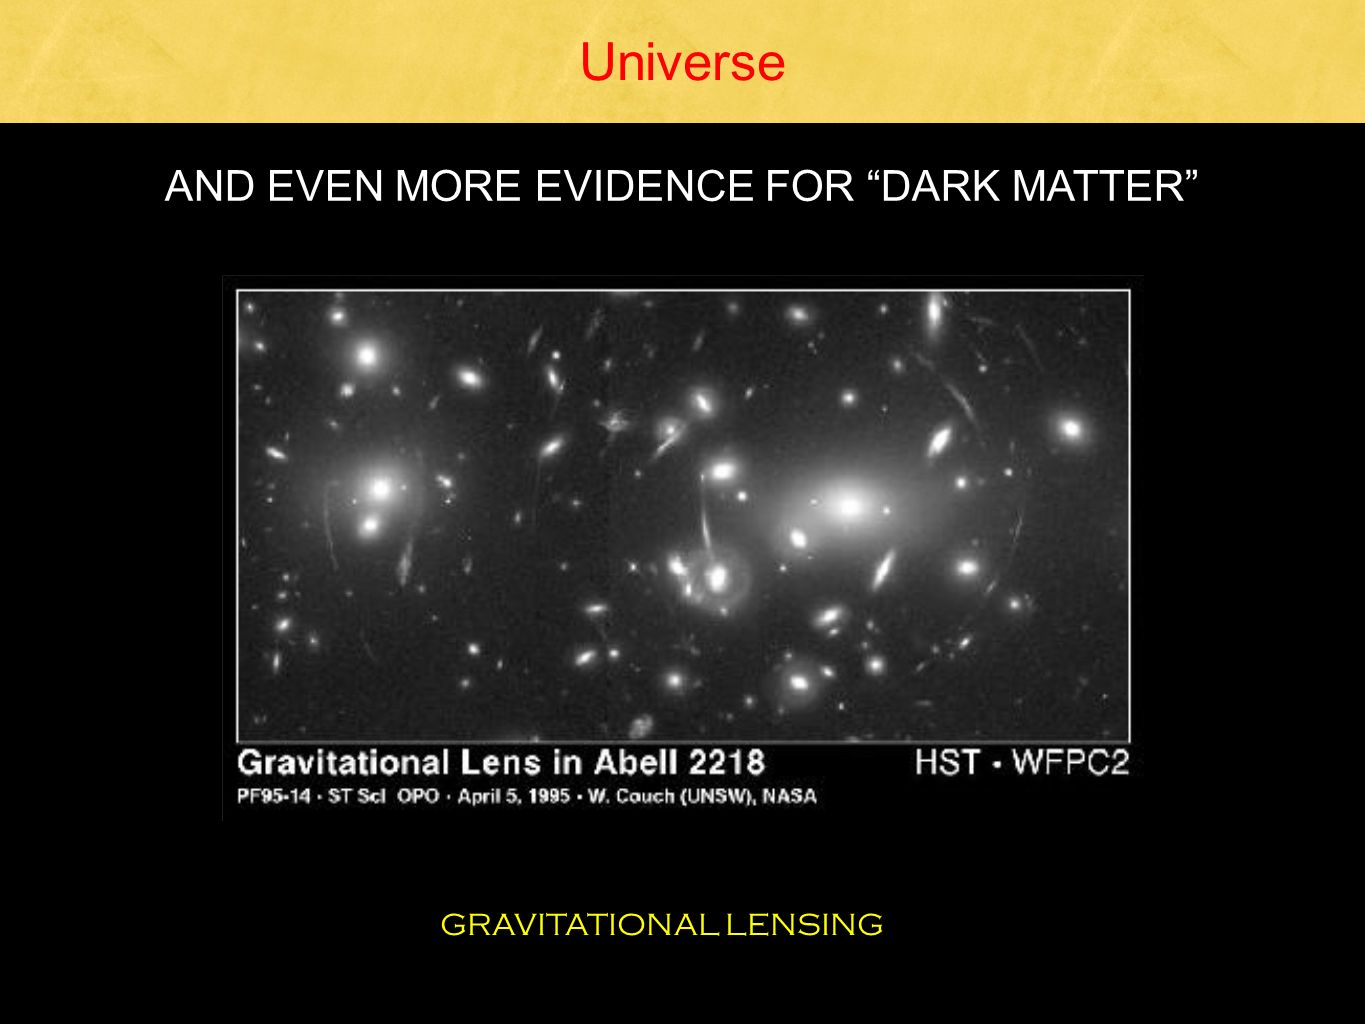 AND EVEN MORE EVIDENCE FOR DARK MATTER